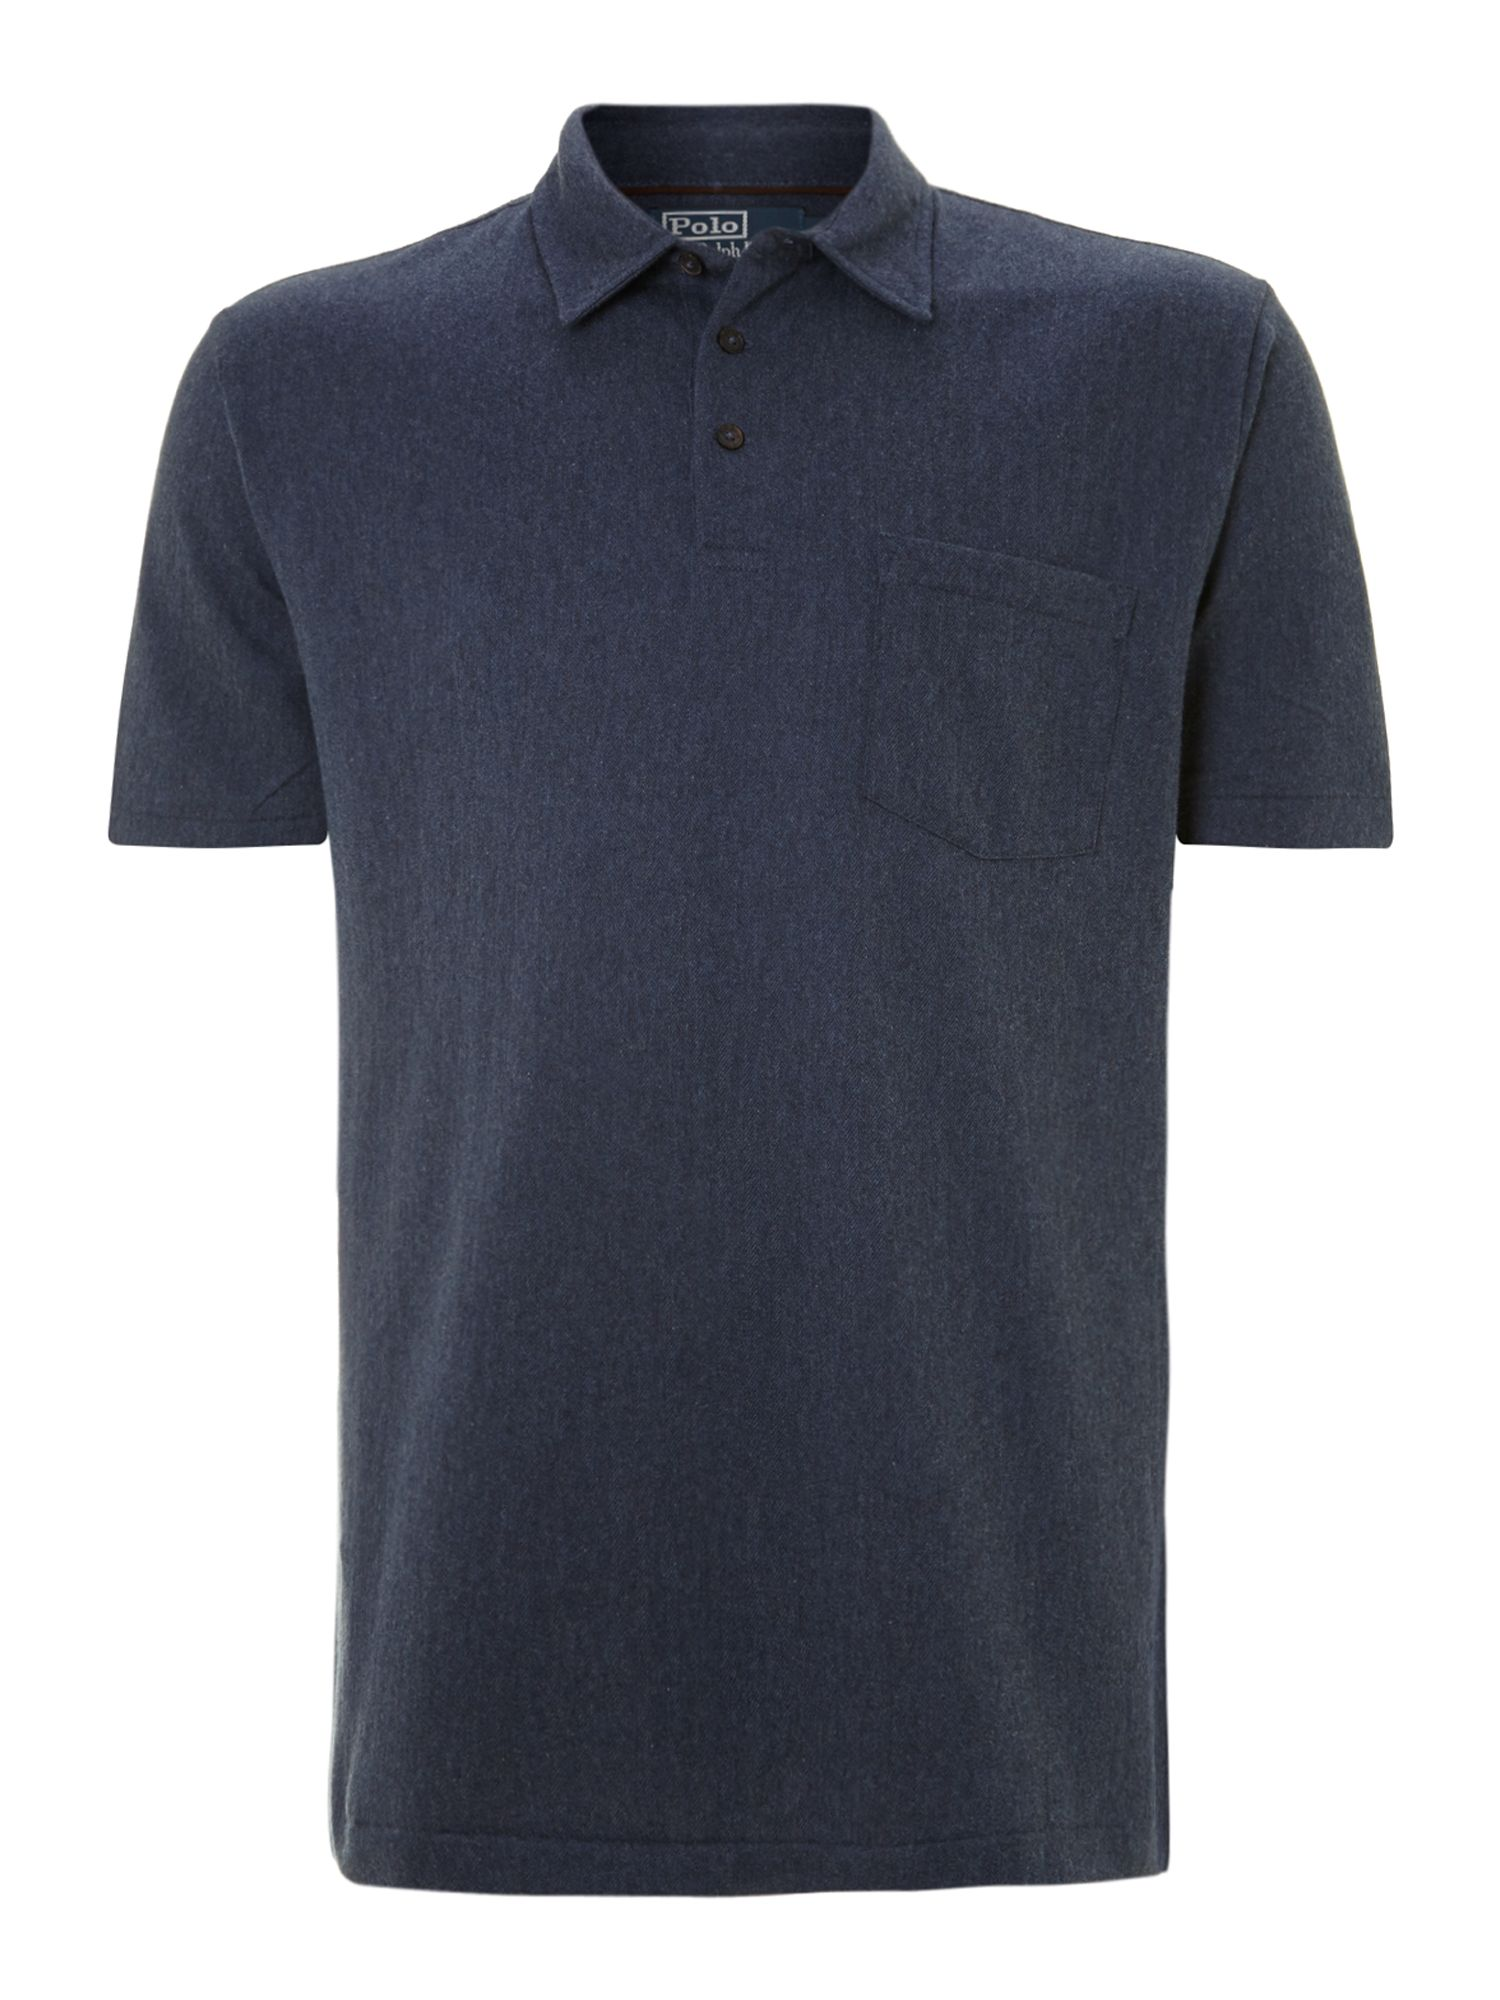 Soft mini herringbone polo shirt